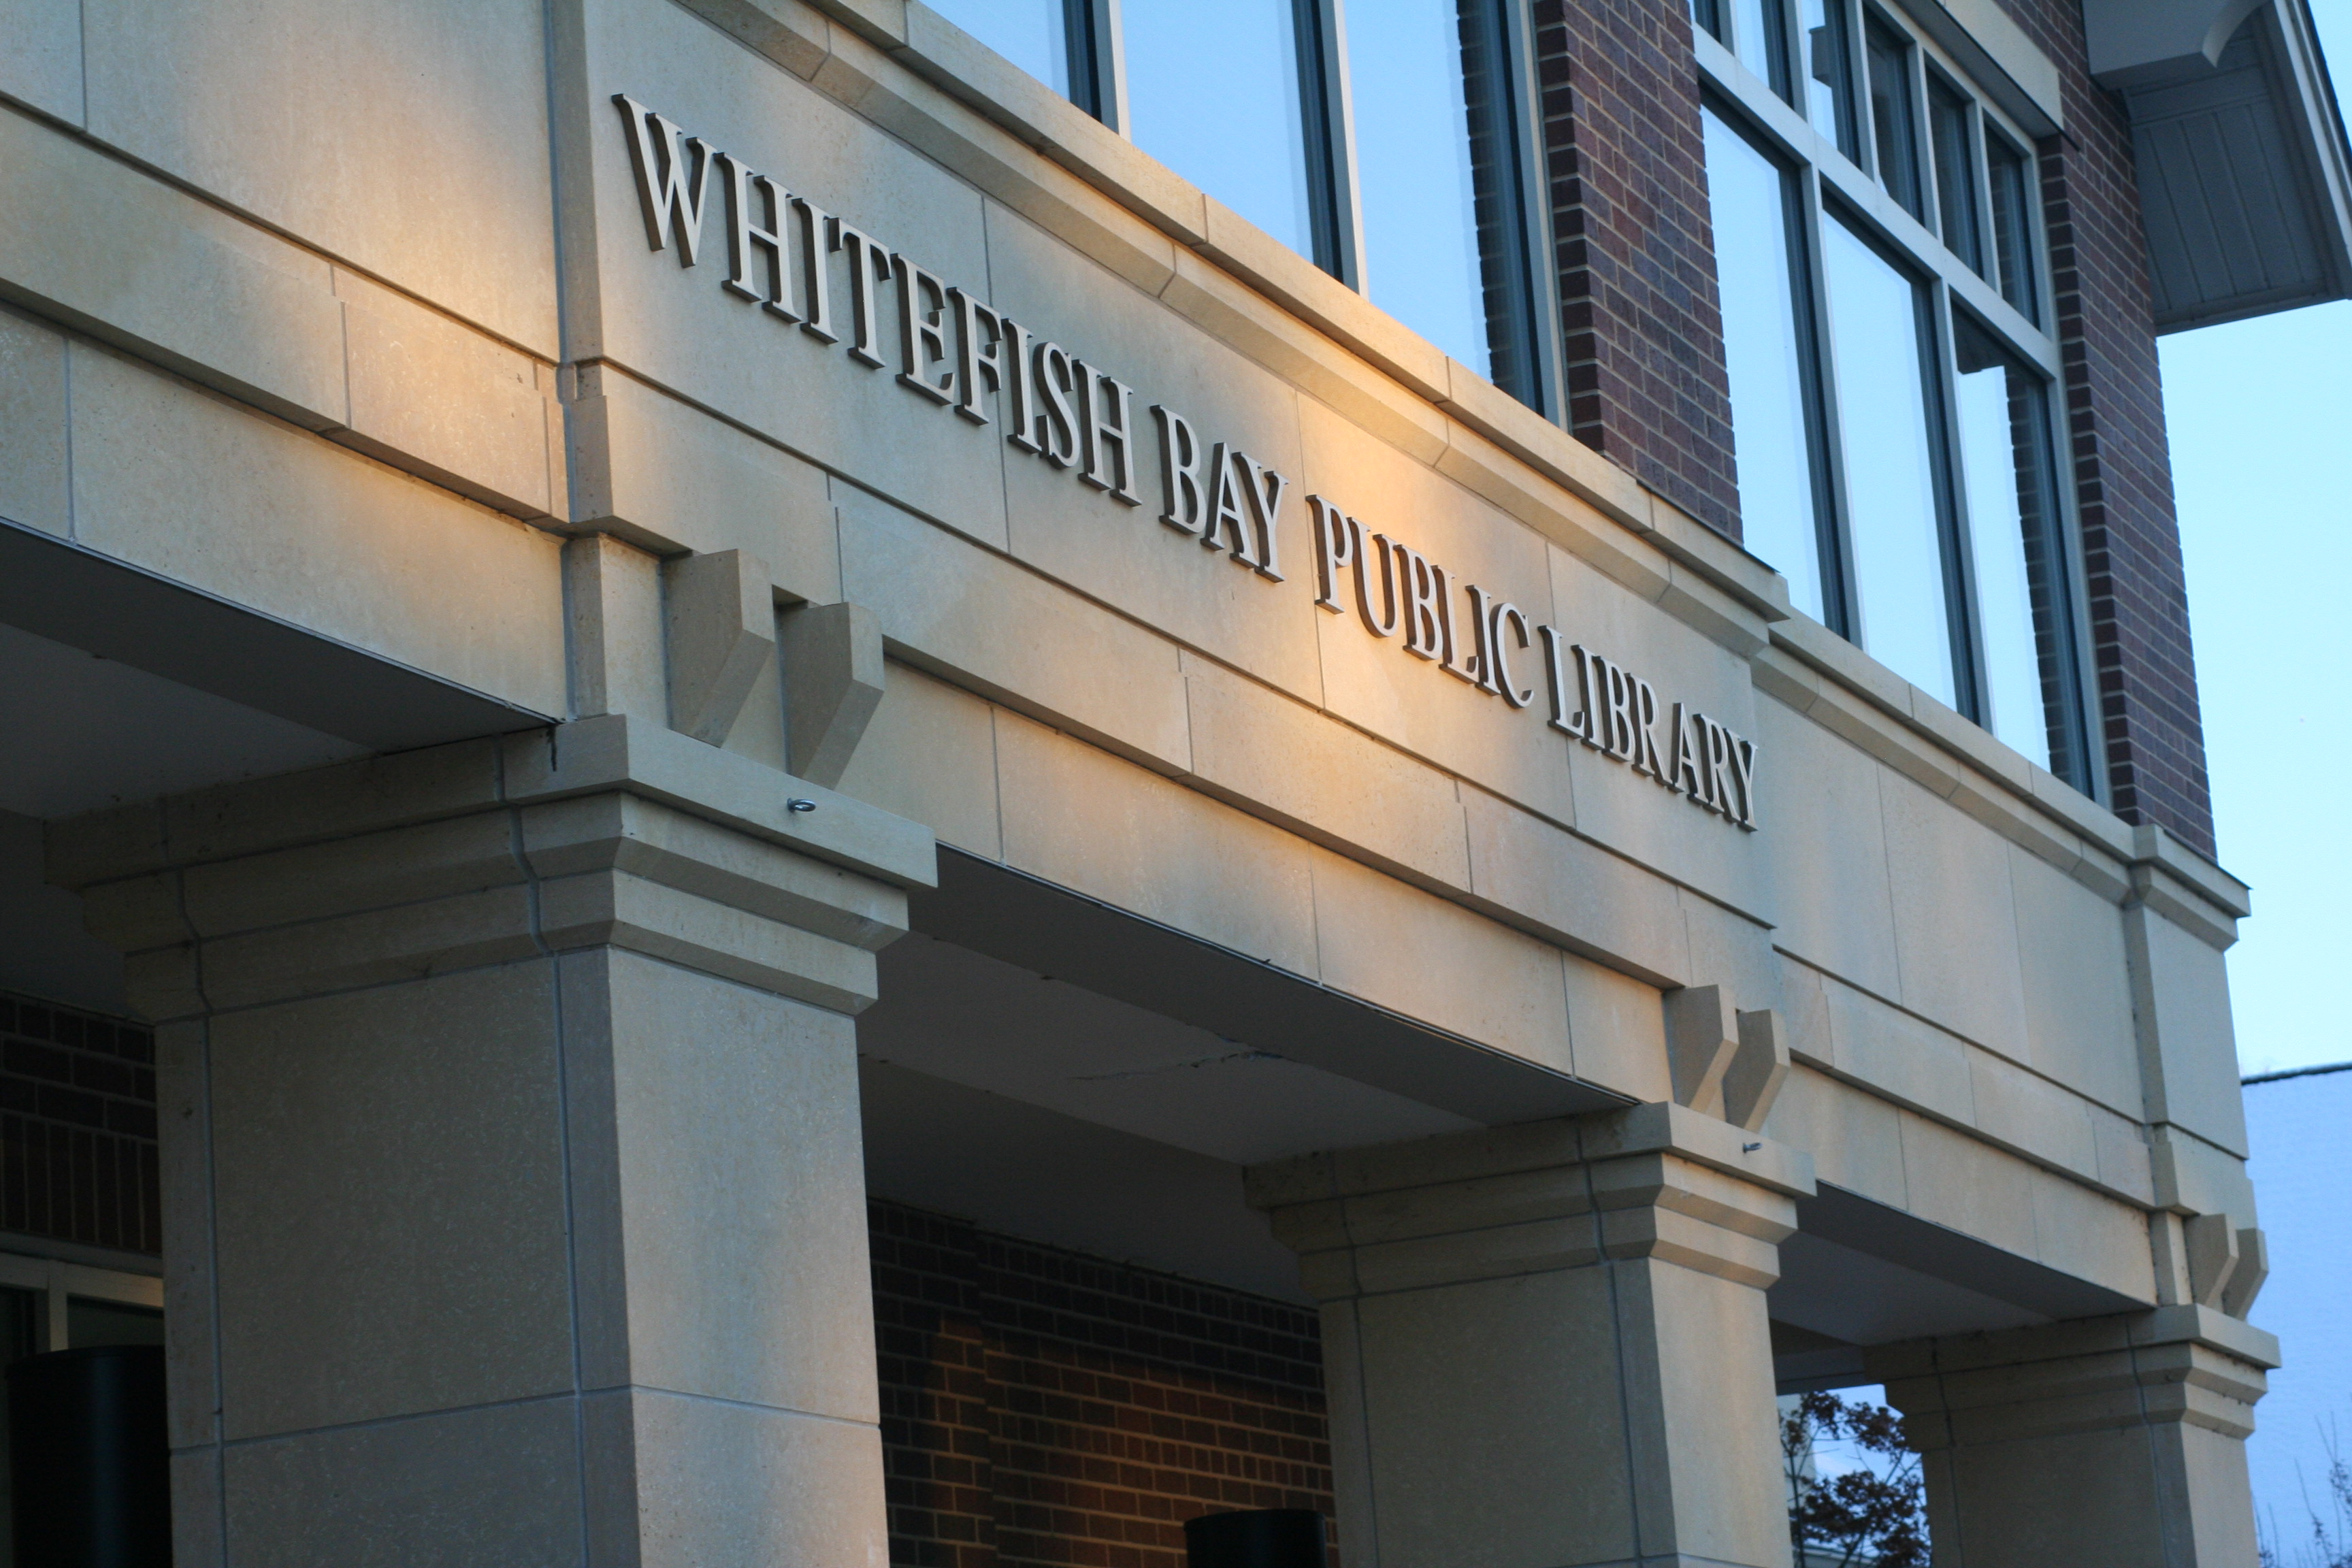 Free Legal Music Downloads Available Through Whitefish Bay Library